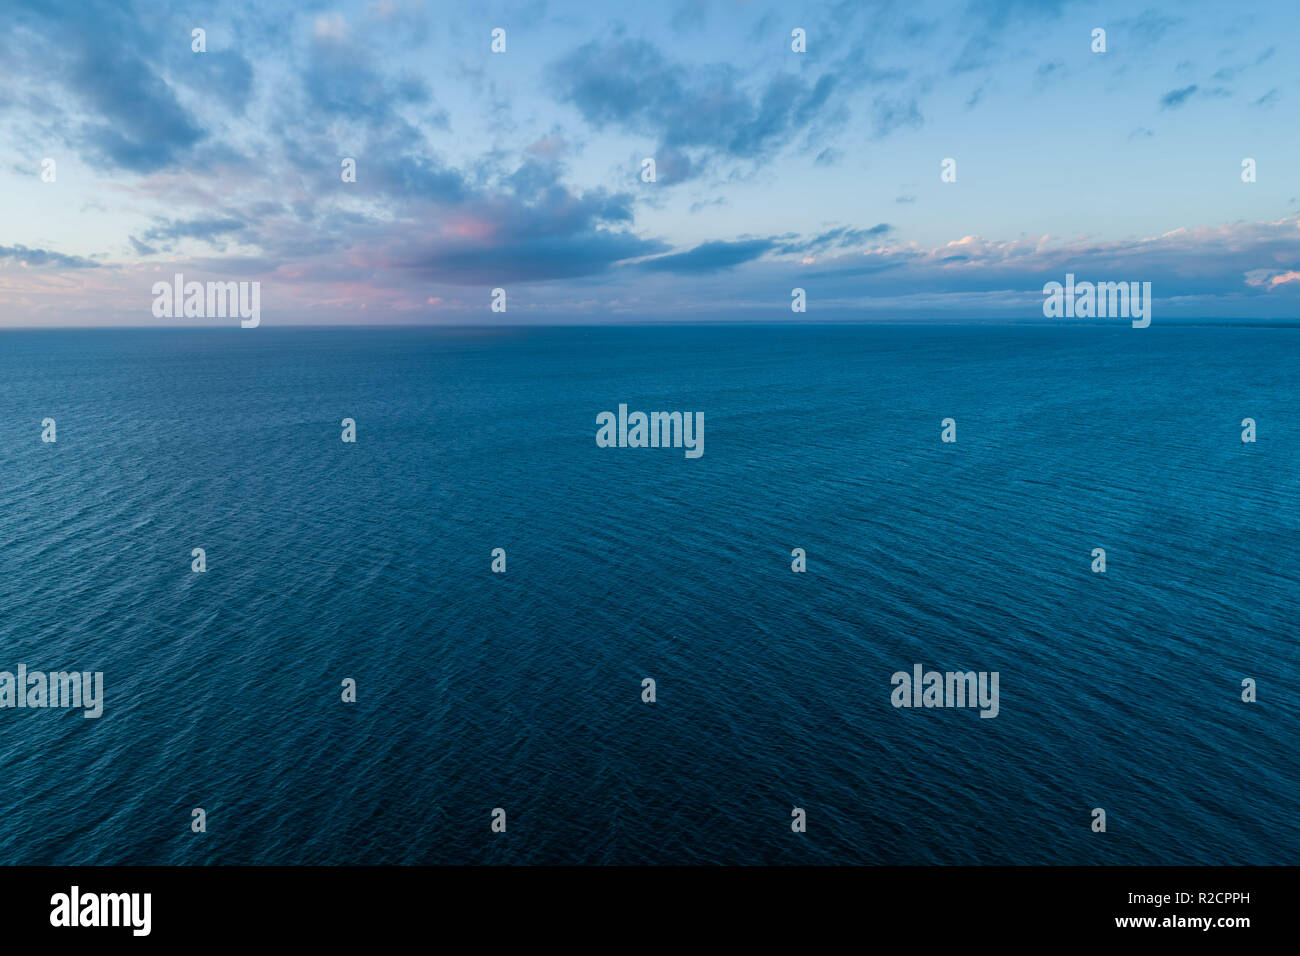 Minimalistic seascape - clouds over water at dusk - Stock Image